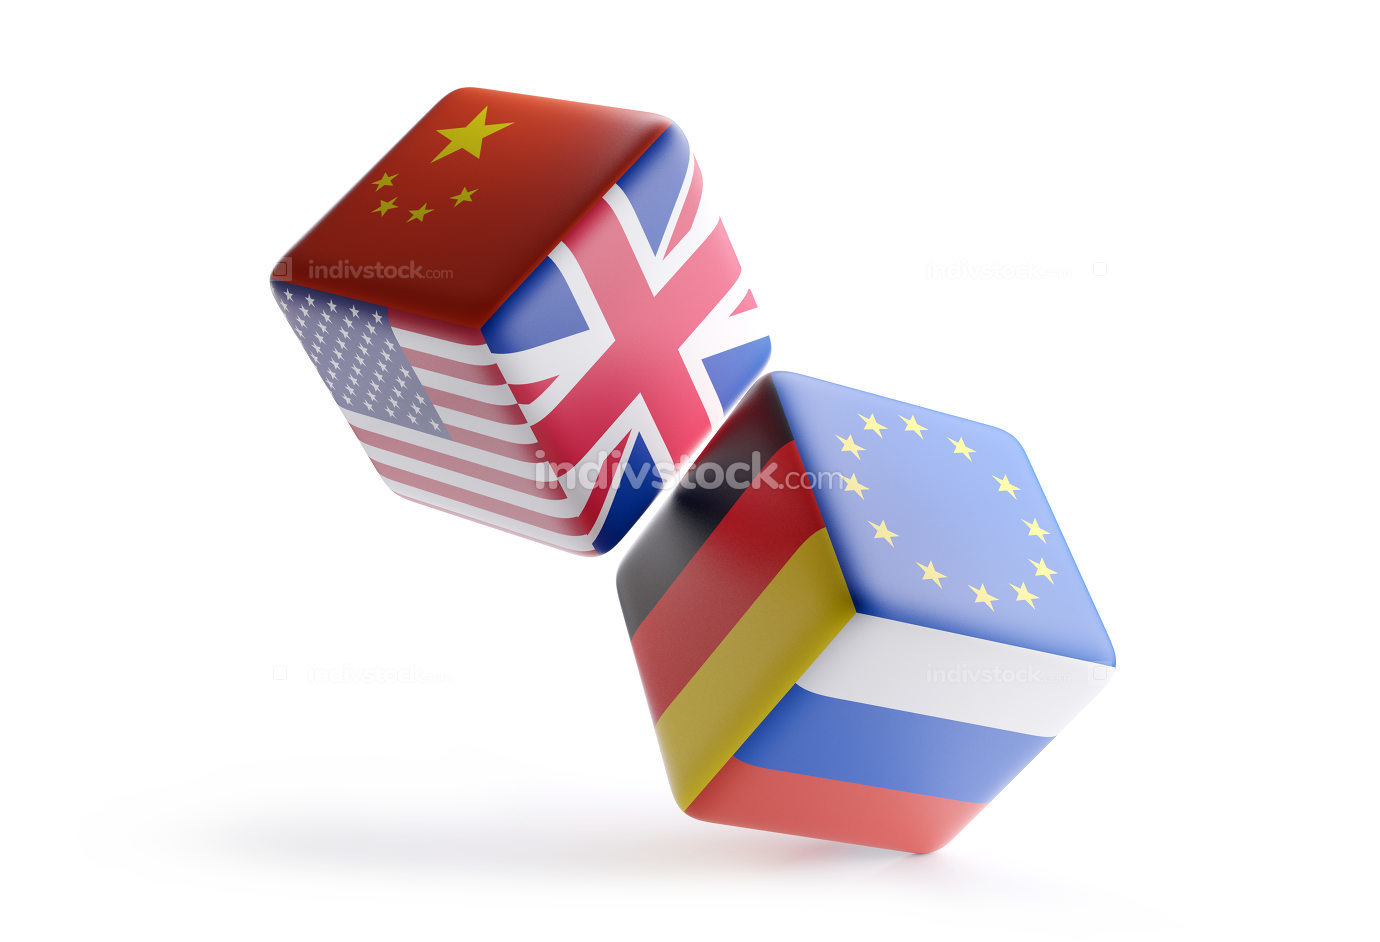 free download: dice China Europe USA UK Germany Russia 3d-illustration